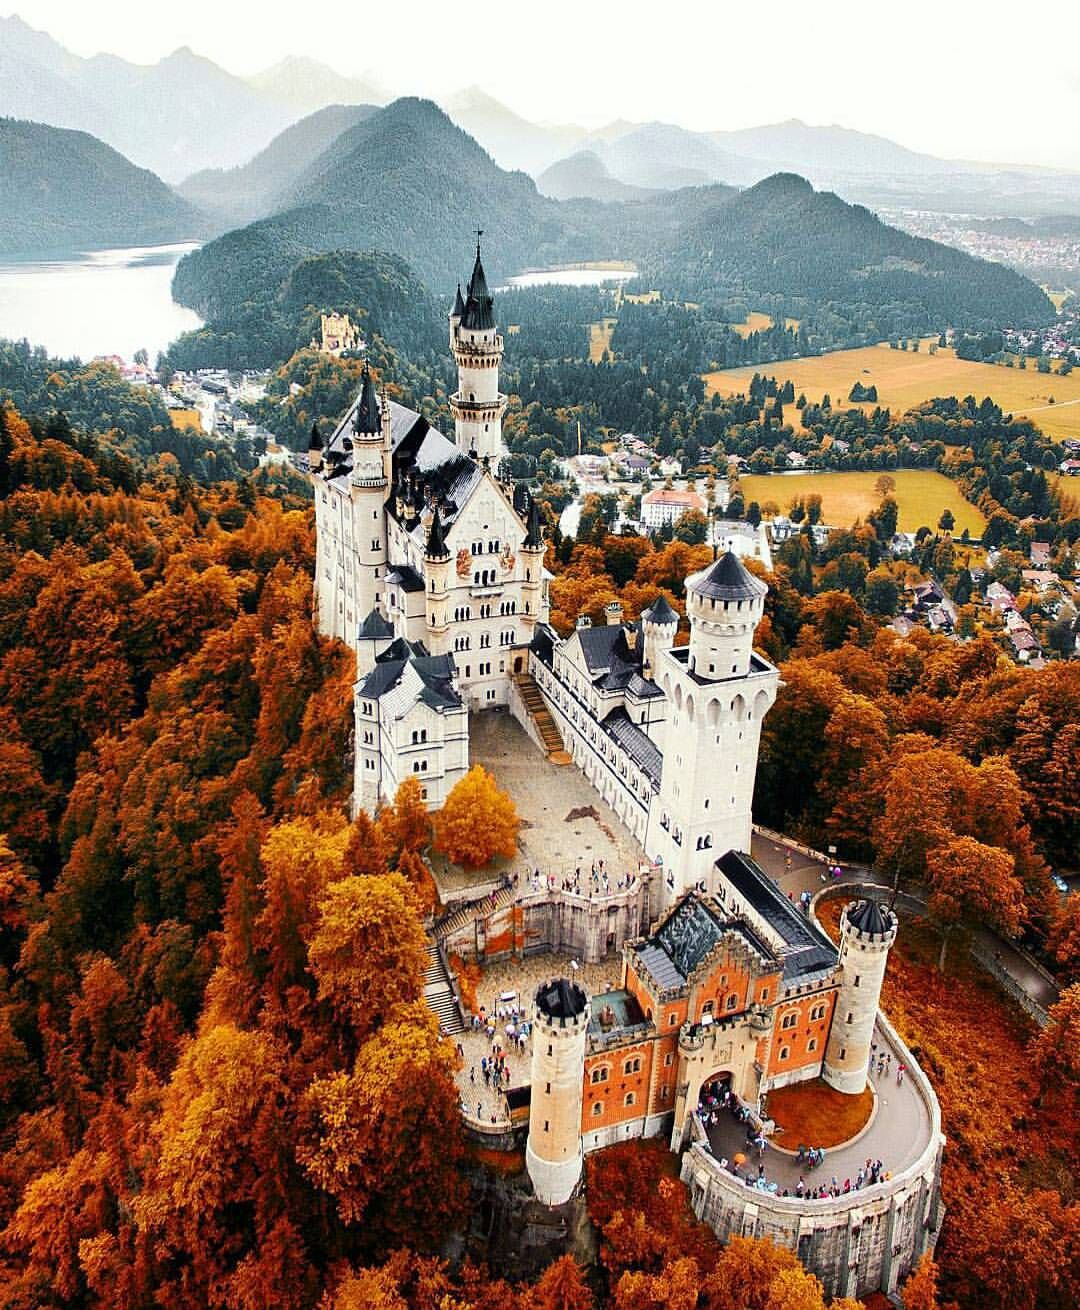 Wonderful Nature On Instagram Neuschwanstein Castle Germany Photo By Jacob Check Out His Feed For Mo Places To Travel Neuschwanstein Castle Germany Castles